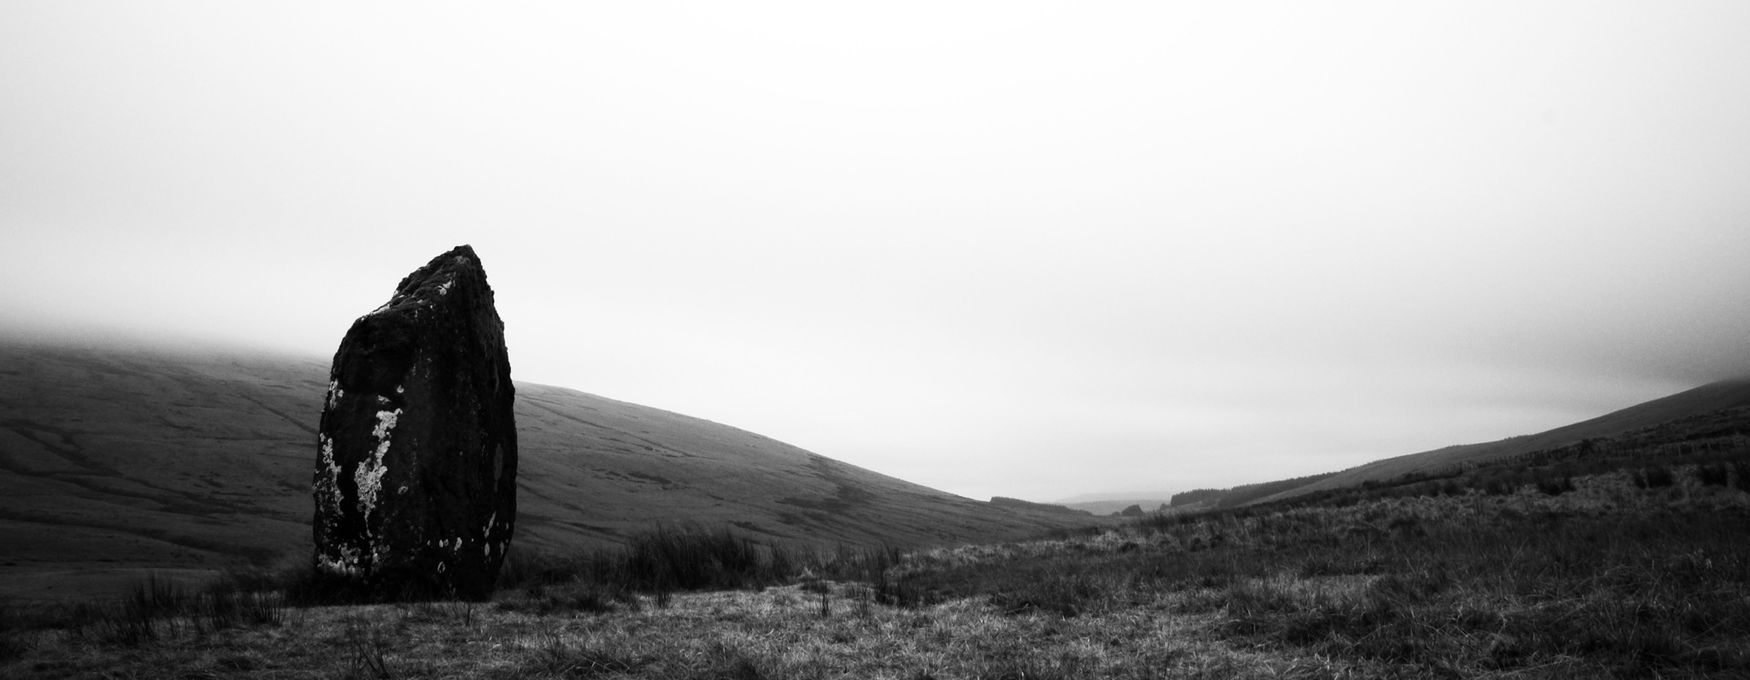 The ancient standing stone known as Maen Llia. Black & White Ancient Wales